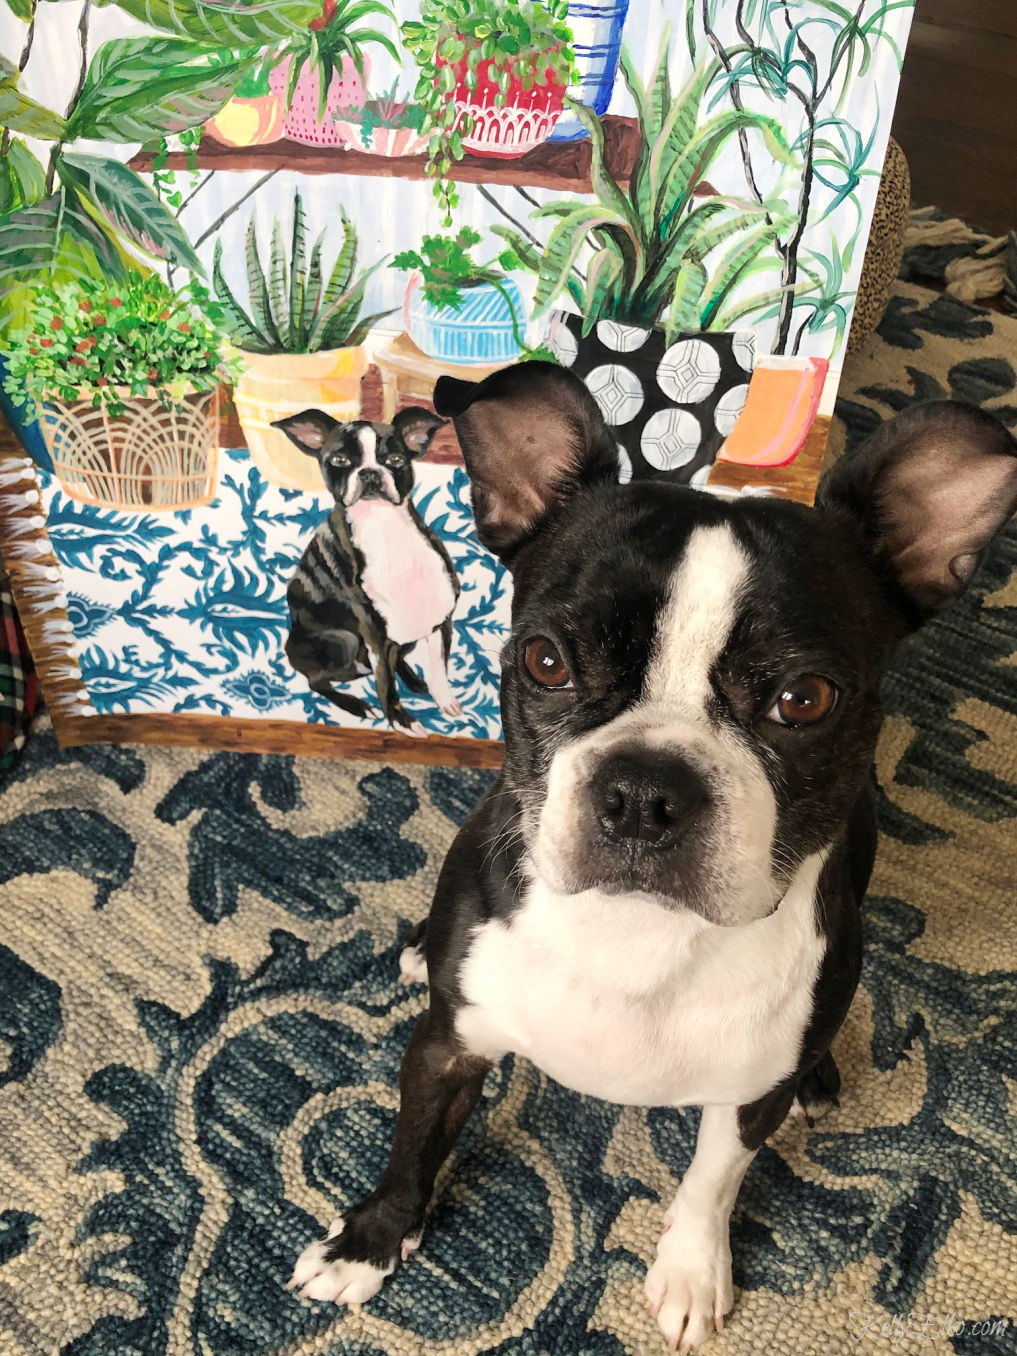 How fun is this custom pet portrait! I love the colorful plants and pattern and of course the Boston Terrier! kellyelko.com #petportrait #customart #originalart #artist #bostonterrier #colorlovers #plantlady